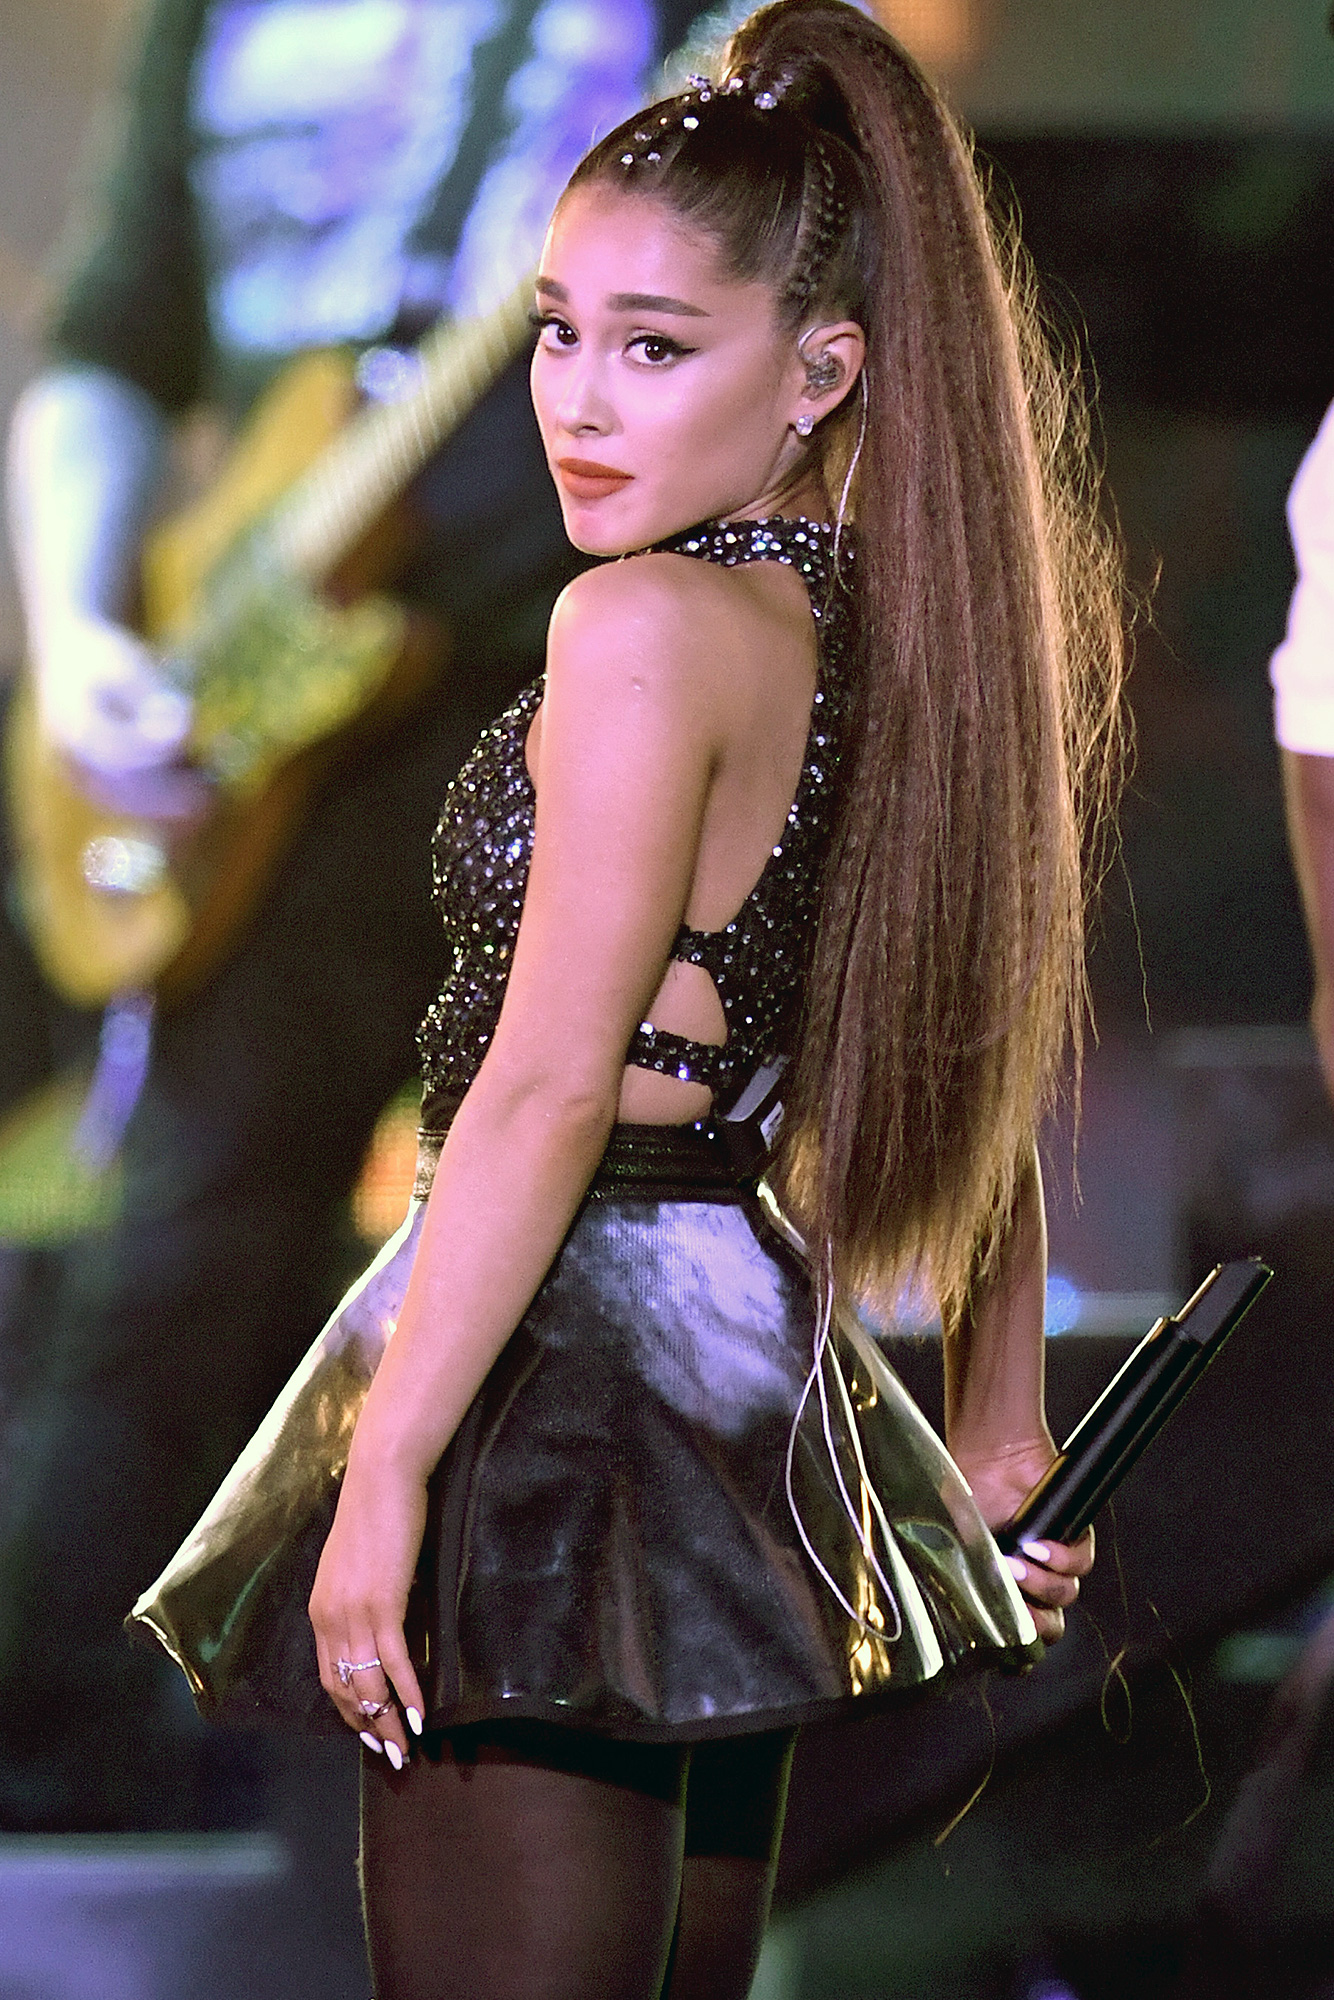 Ariana Grande, Canceled Event, Scooter Braun - Ariana Grande performs onstage during the 2018 iHeartRadio by AT&T at Banc of California Stadium on June 2, 2018 in Los Angeles, California.